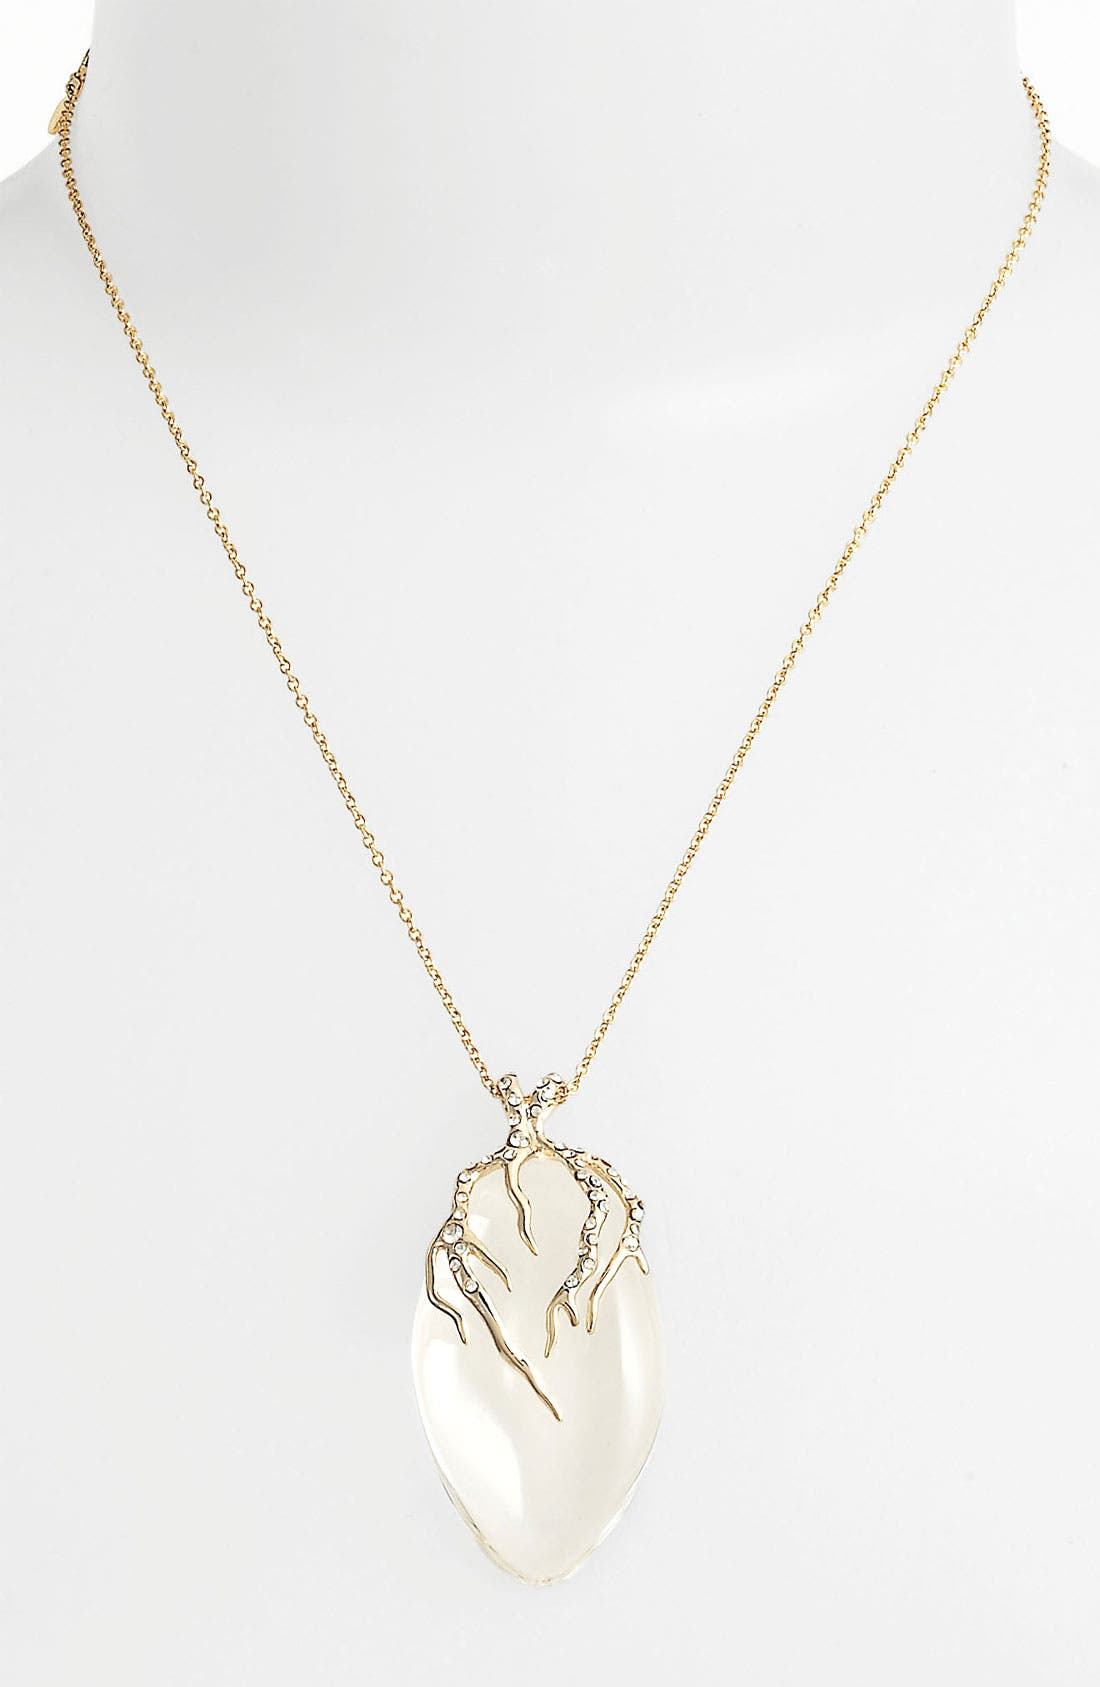 Main Image - Alexis Bittar 'Lucite® - Ophelia' Small Vine Pendant Necklace